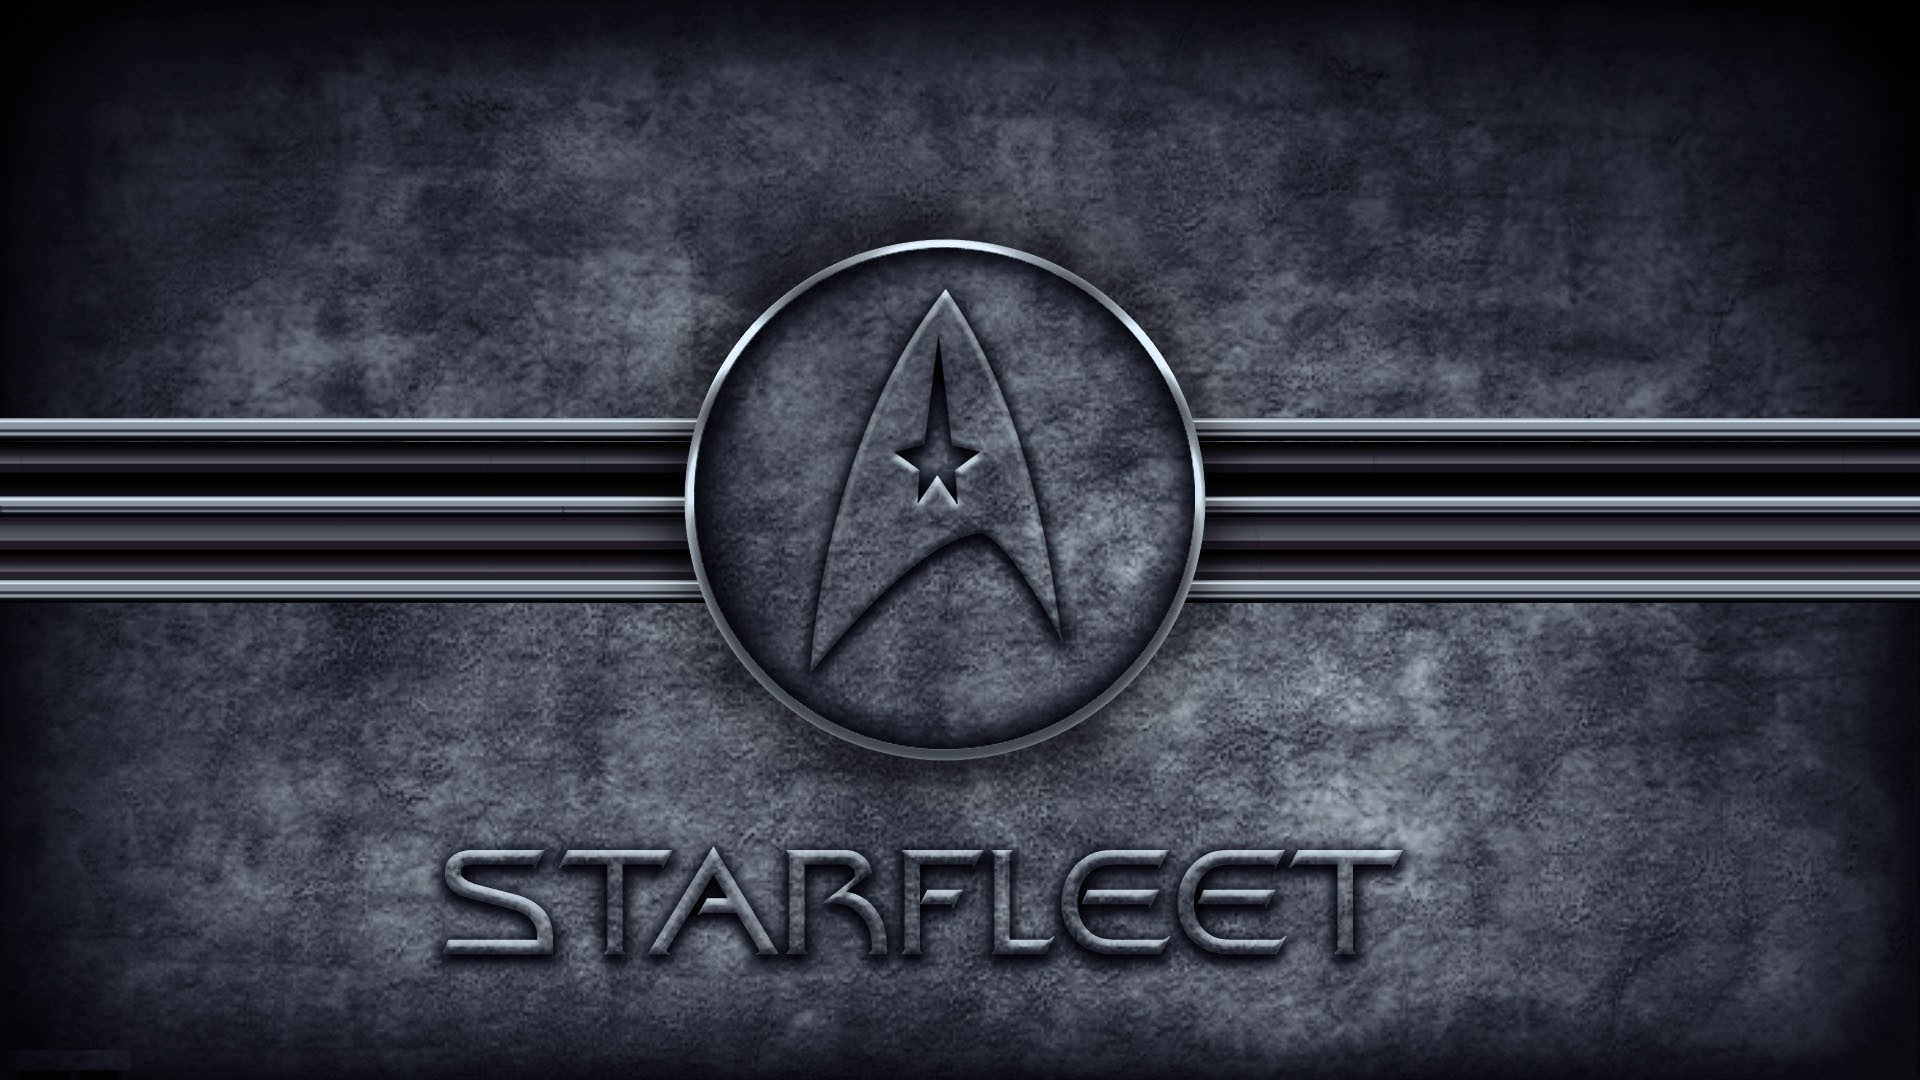 Res: 1920x1080, star trek starfleet logo wallpaper hd Wallpaper HD